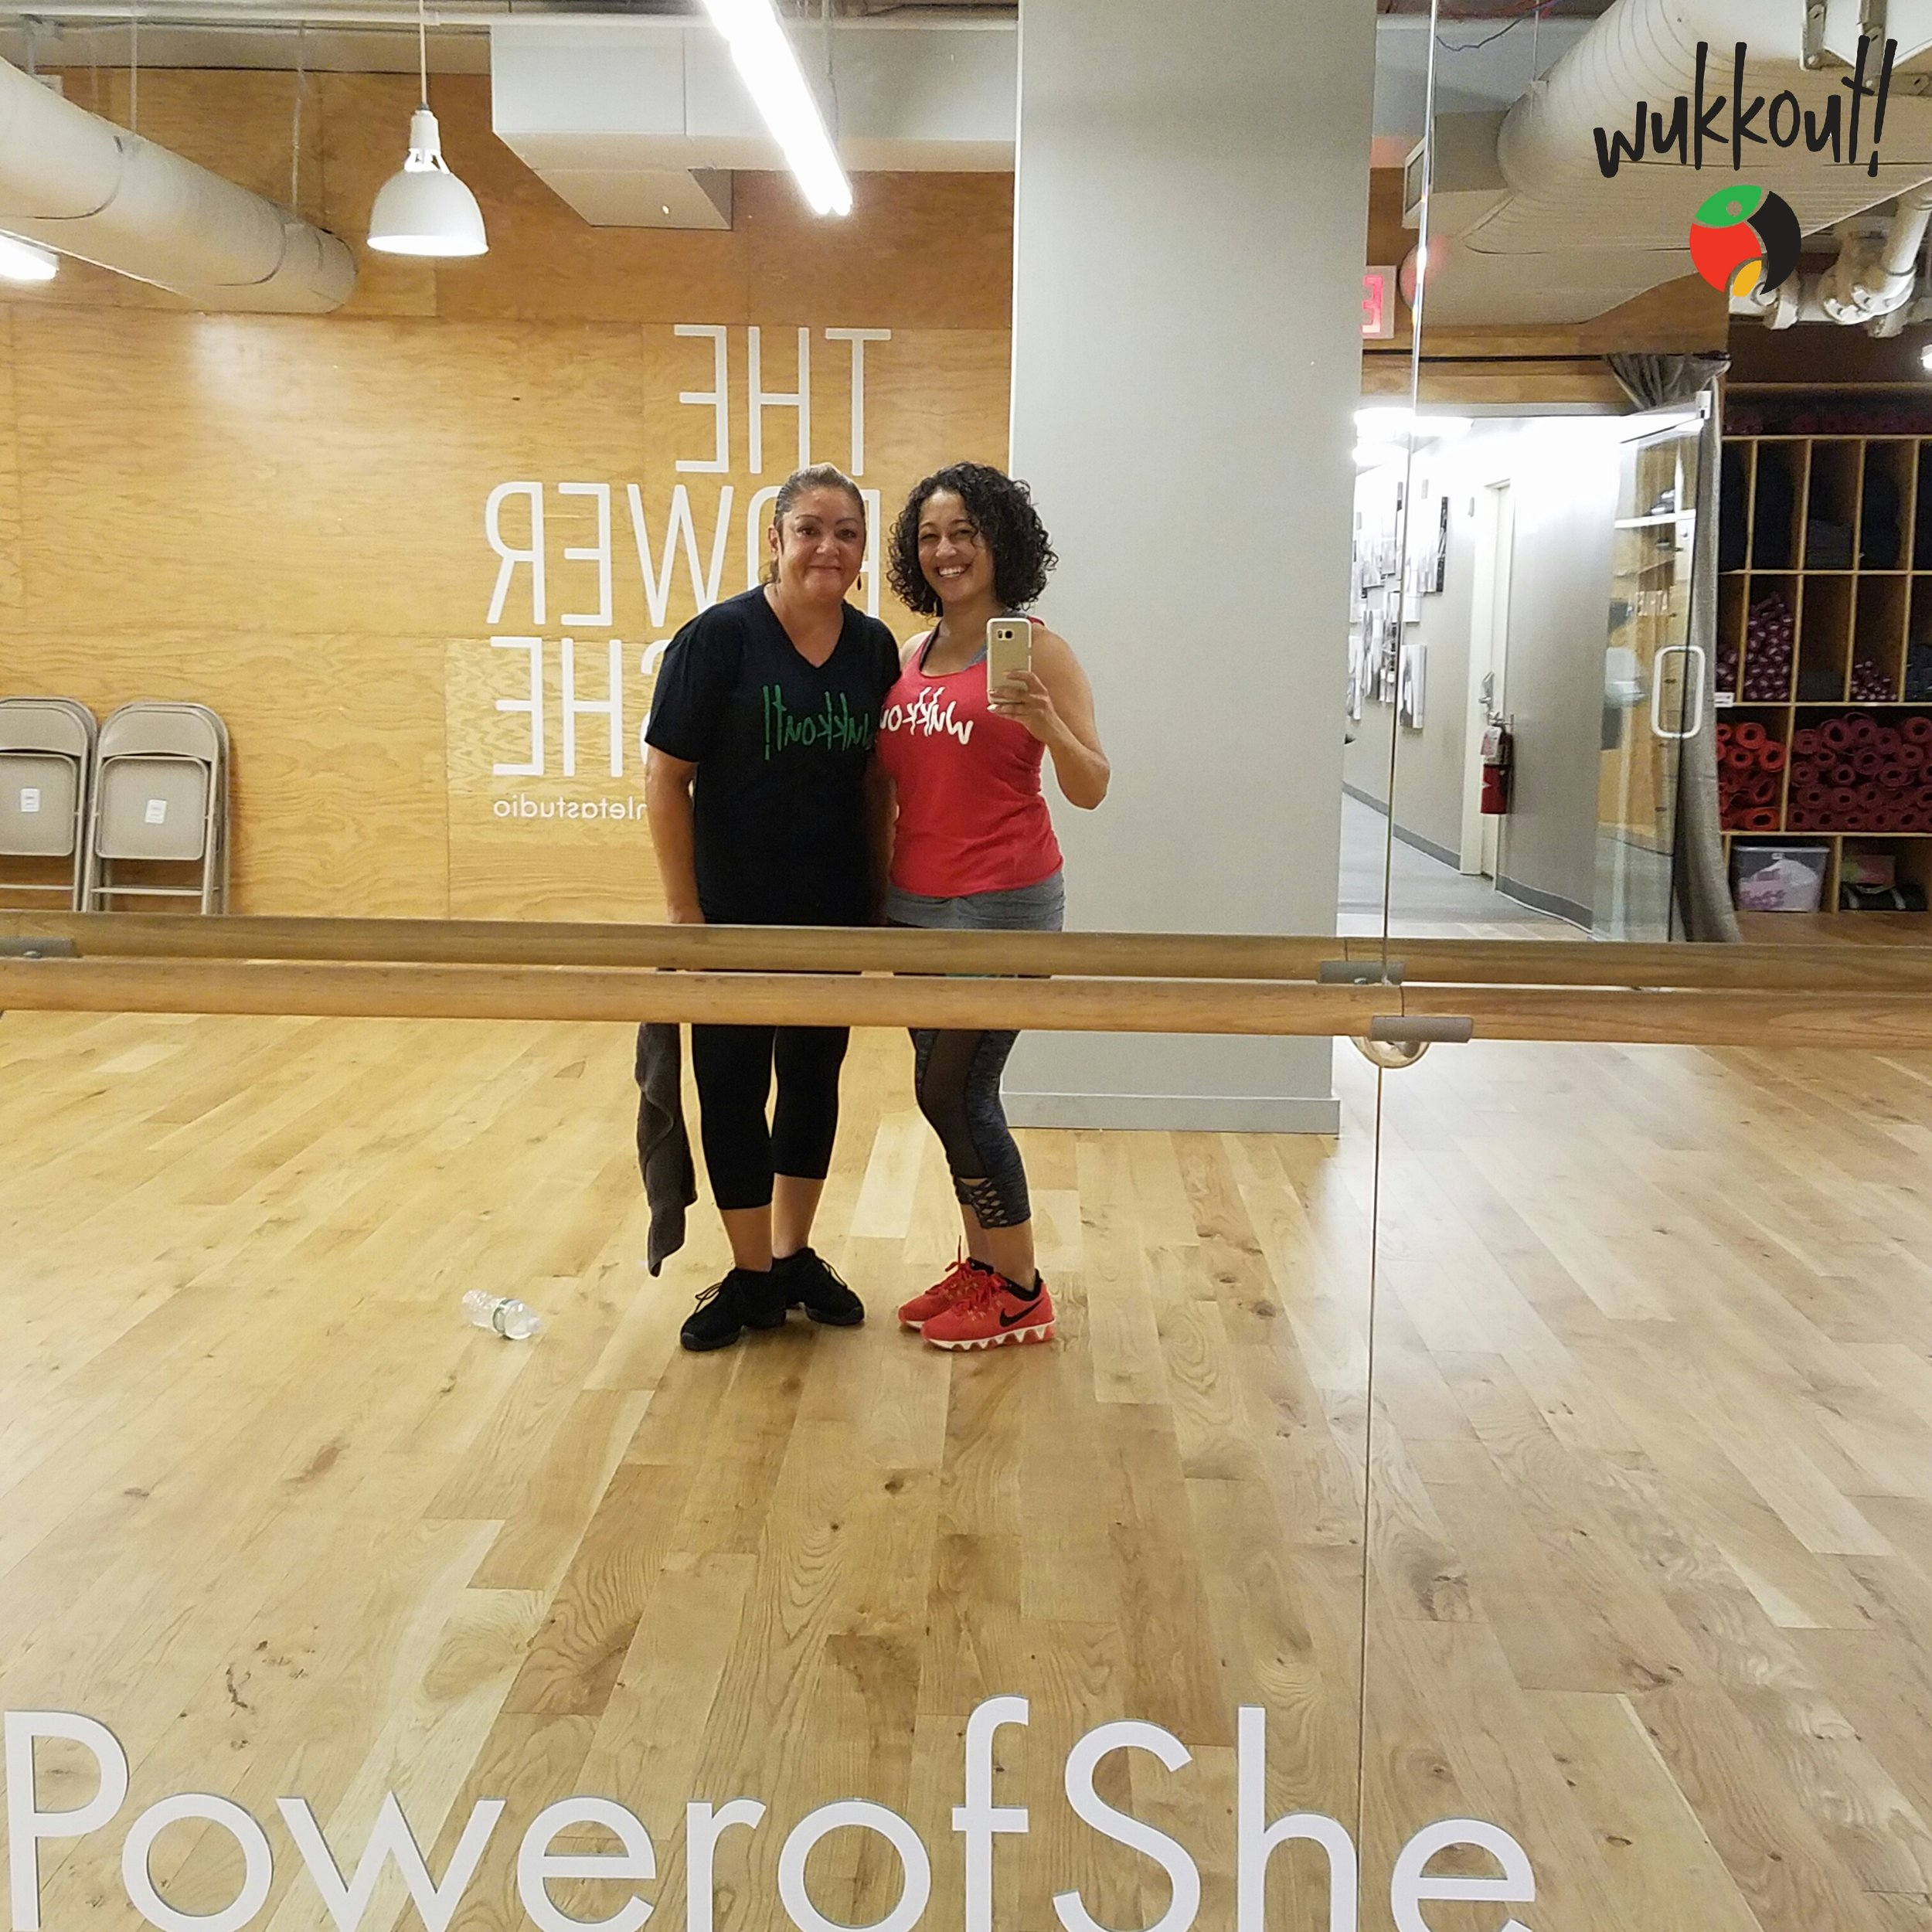 Shout out to Miriam for doing two-a-days every Monday last month!  #powerofshe